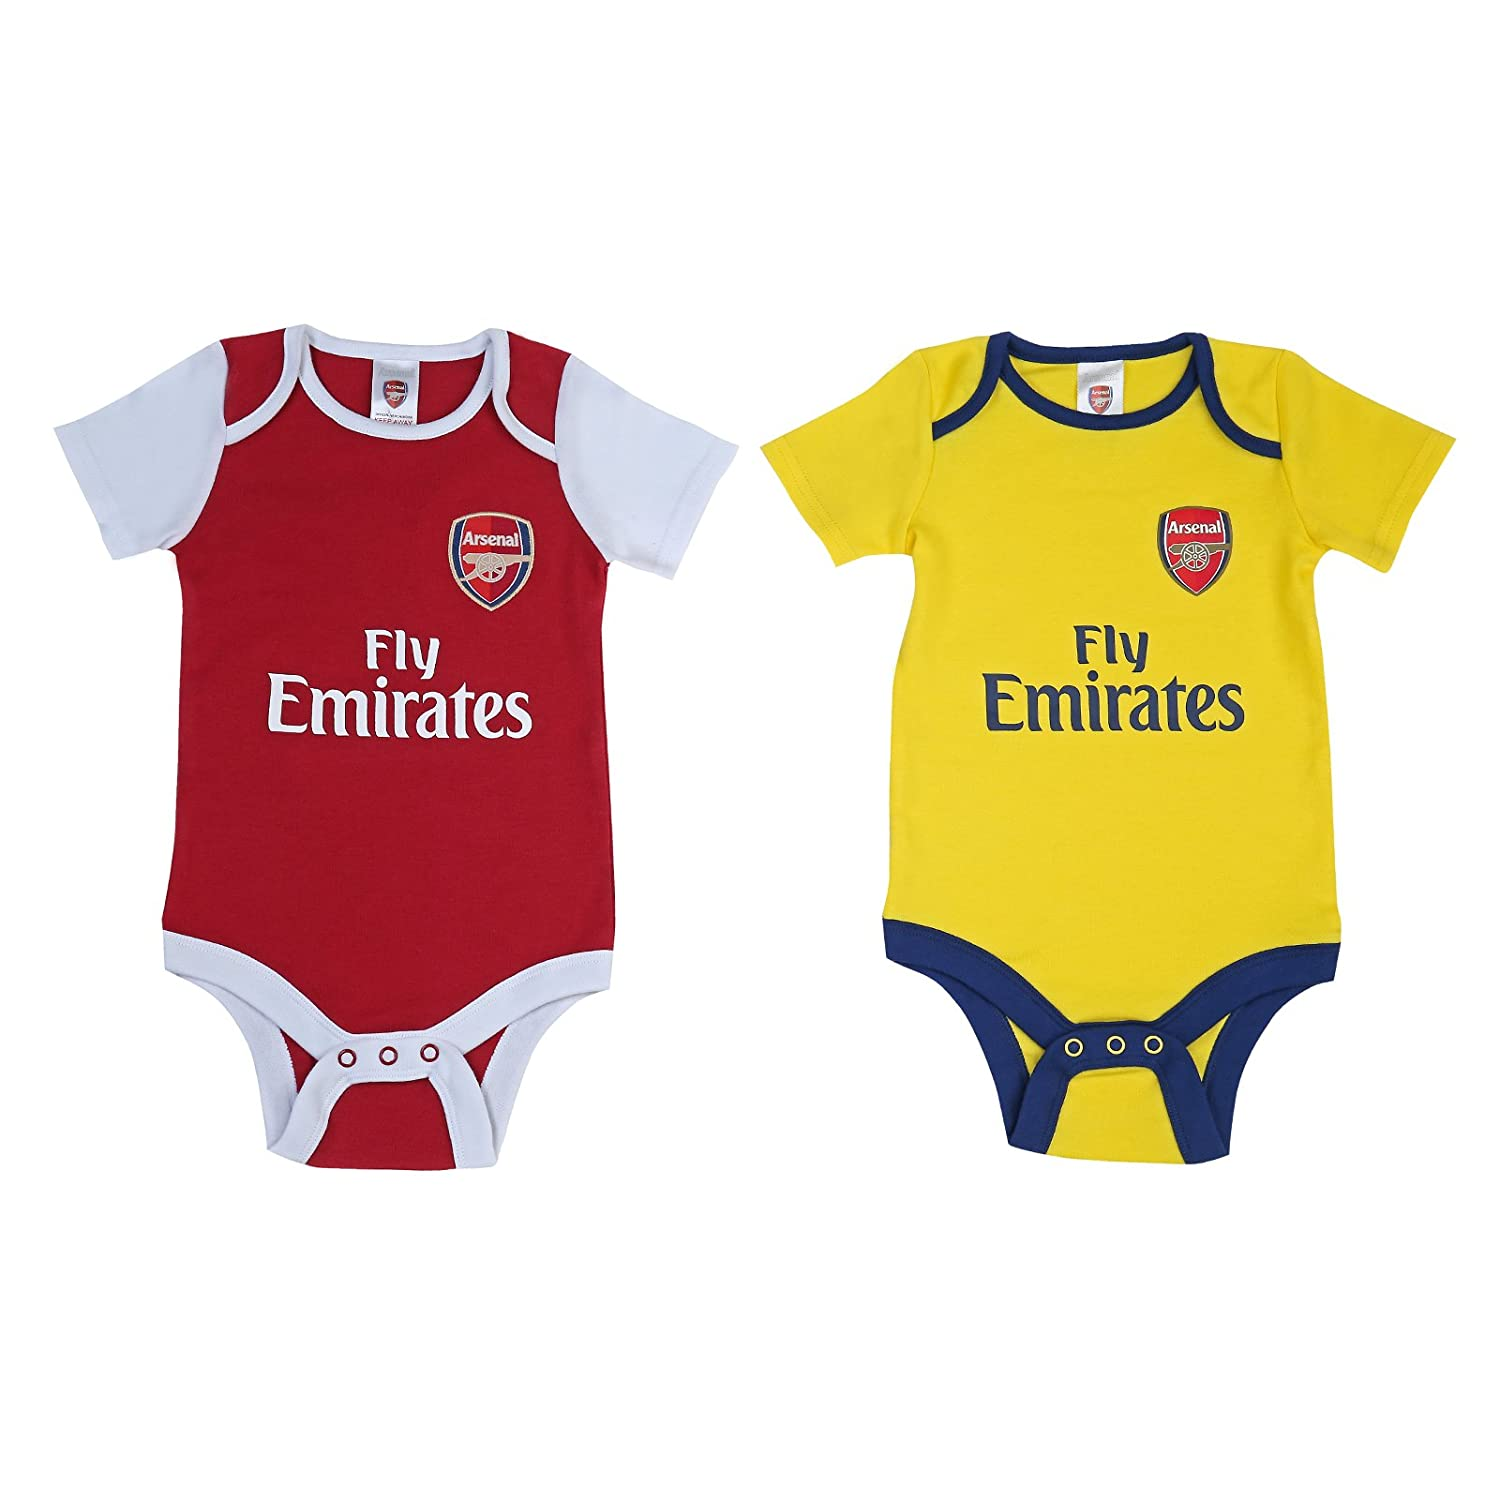 Arsenal Fc Babygrow Sleepsuit Baby Football Kit 12//18 mths WT